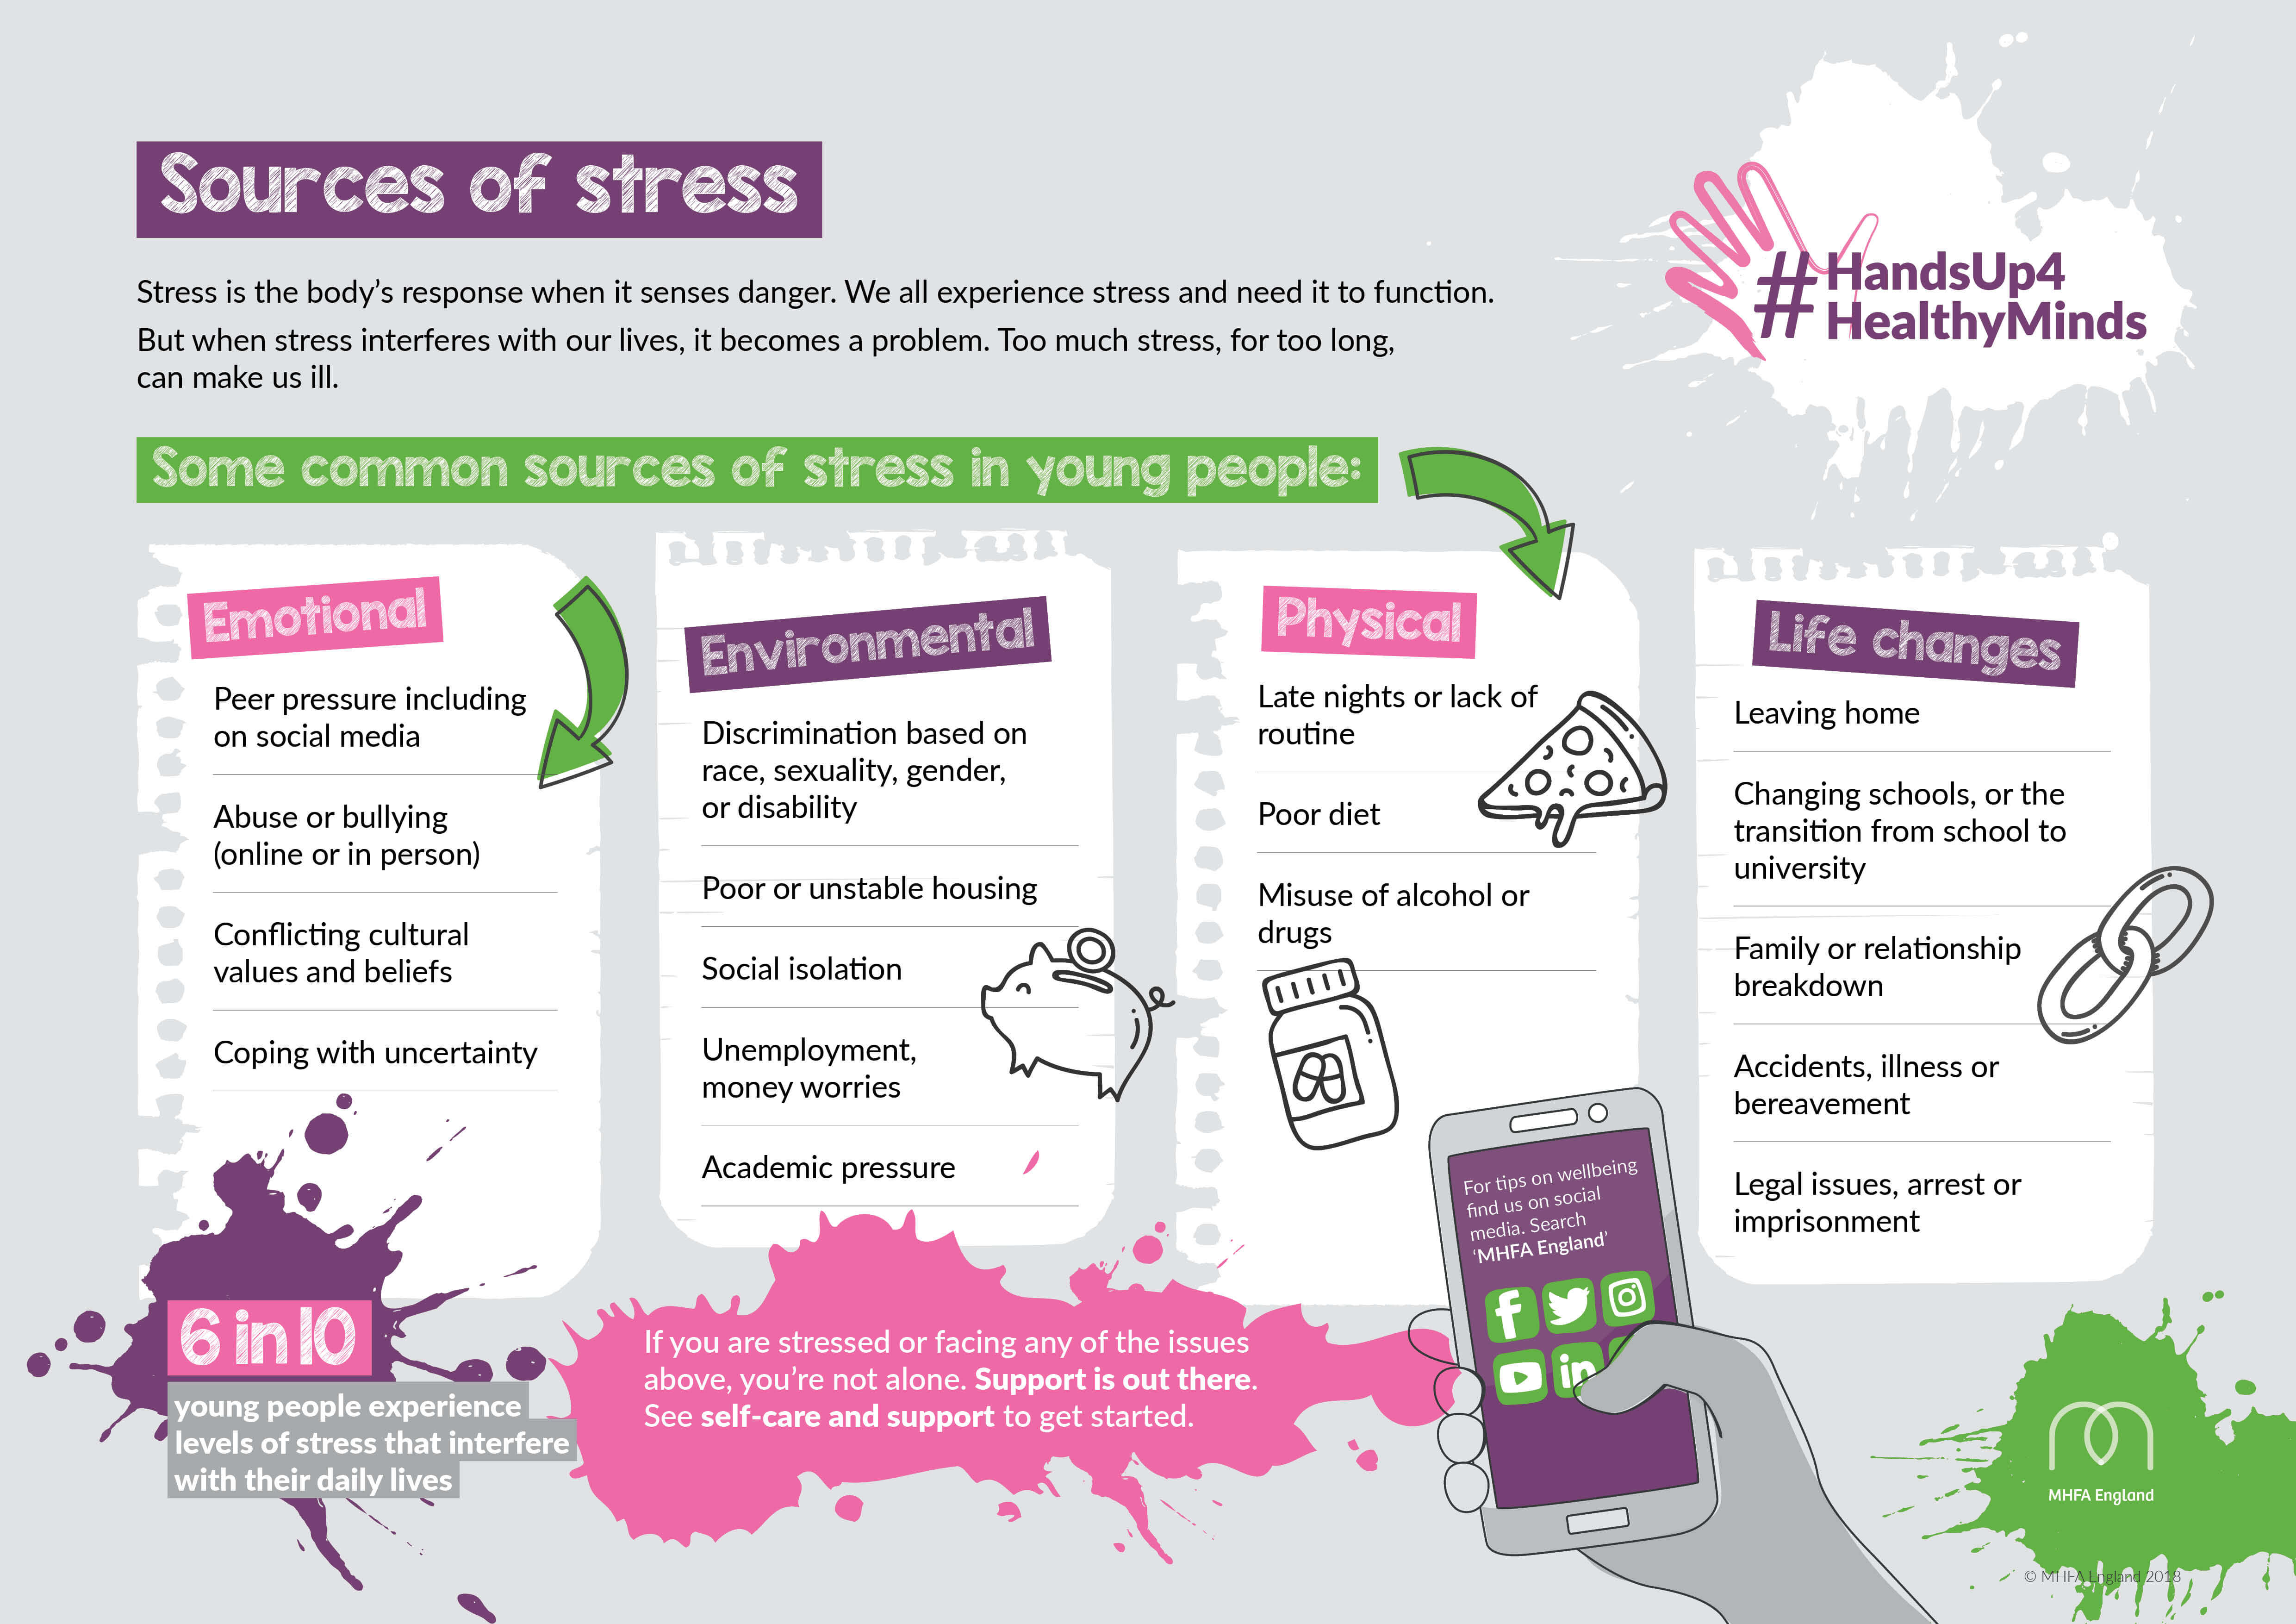 #HU4HM - Sources of stress for young people